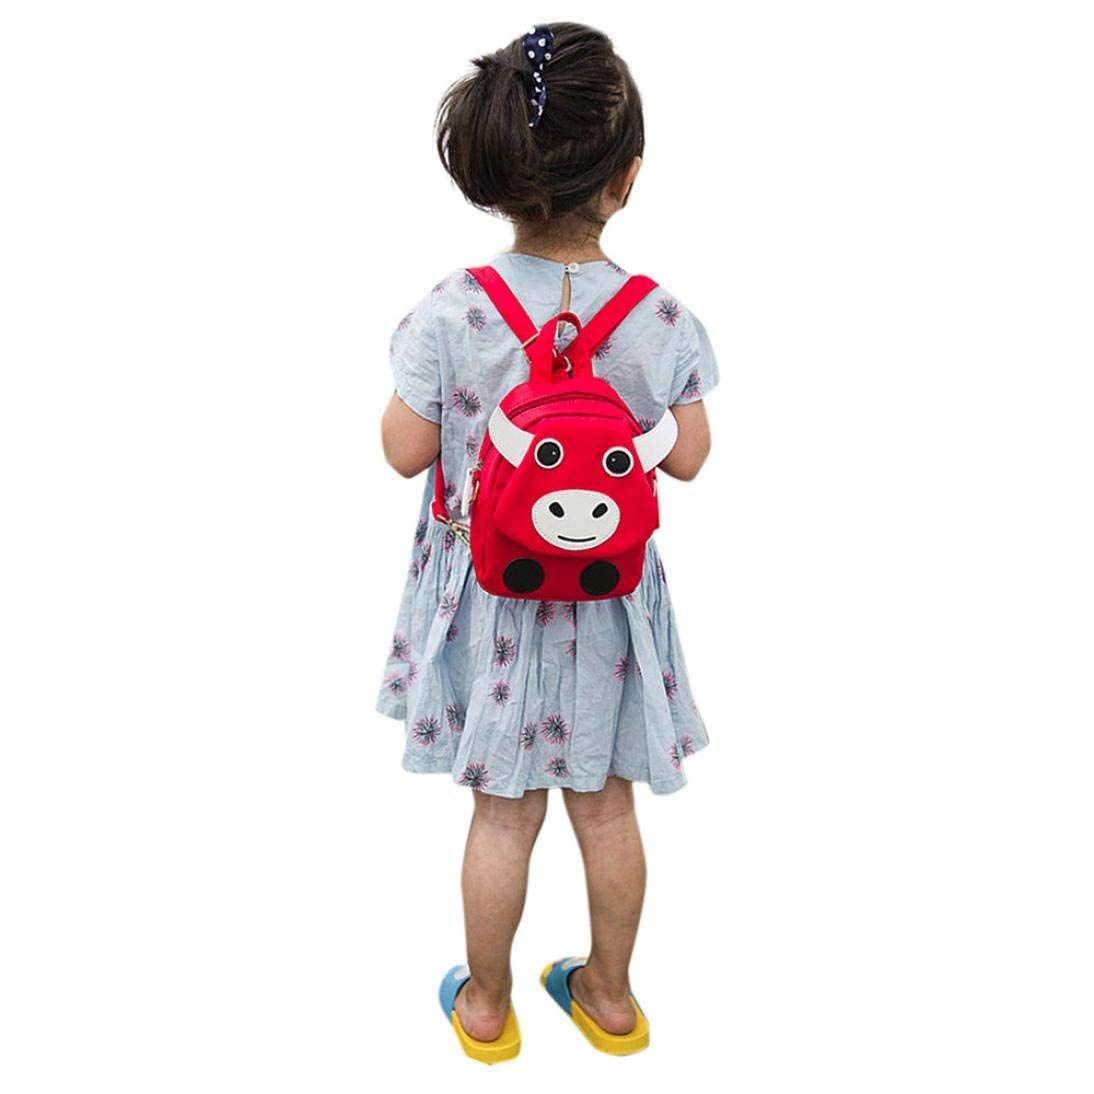 7817ff5806c0 Get Quotations · Leedford Cute Toddler Cartoon Backpack